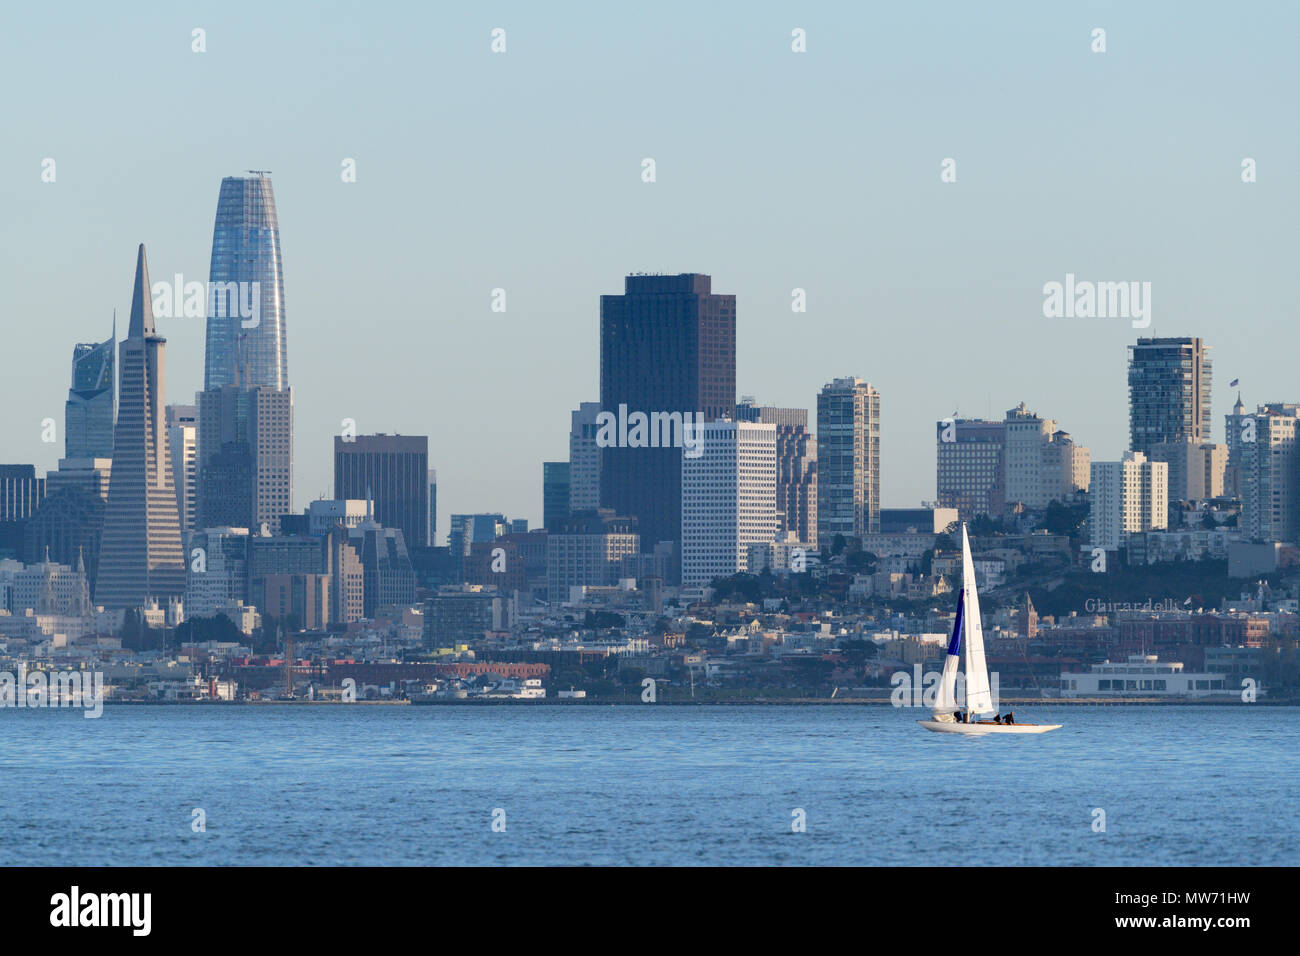 San Francisco skyline as seen from the water with sailboat. - Stock Image